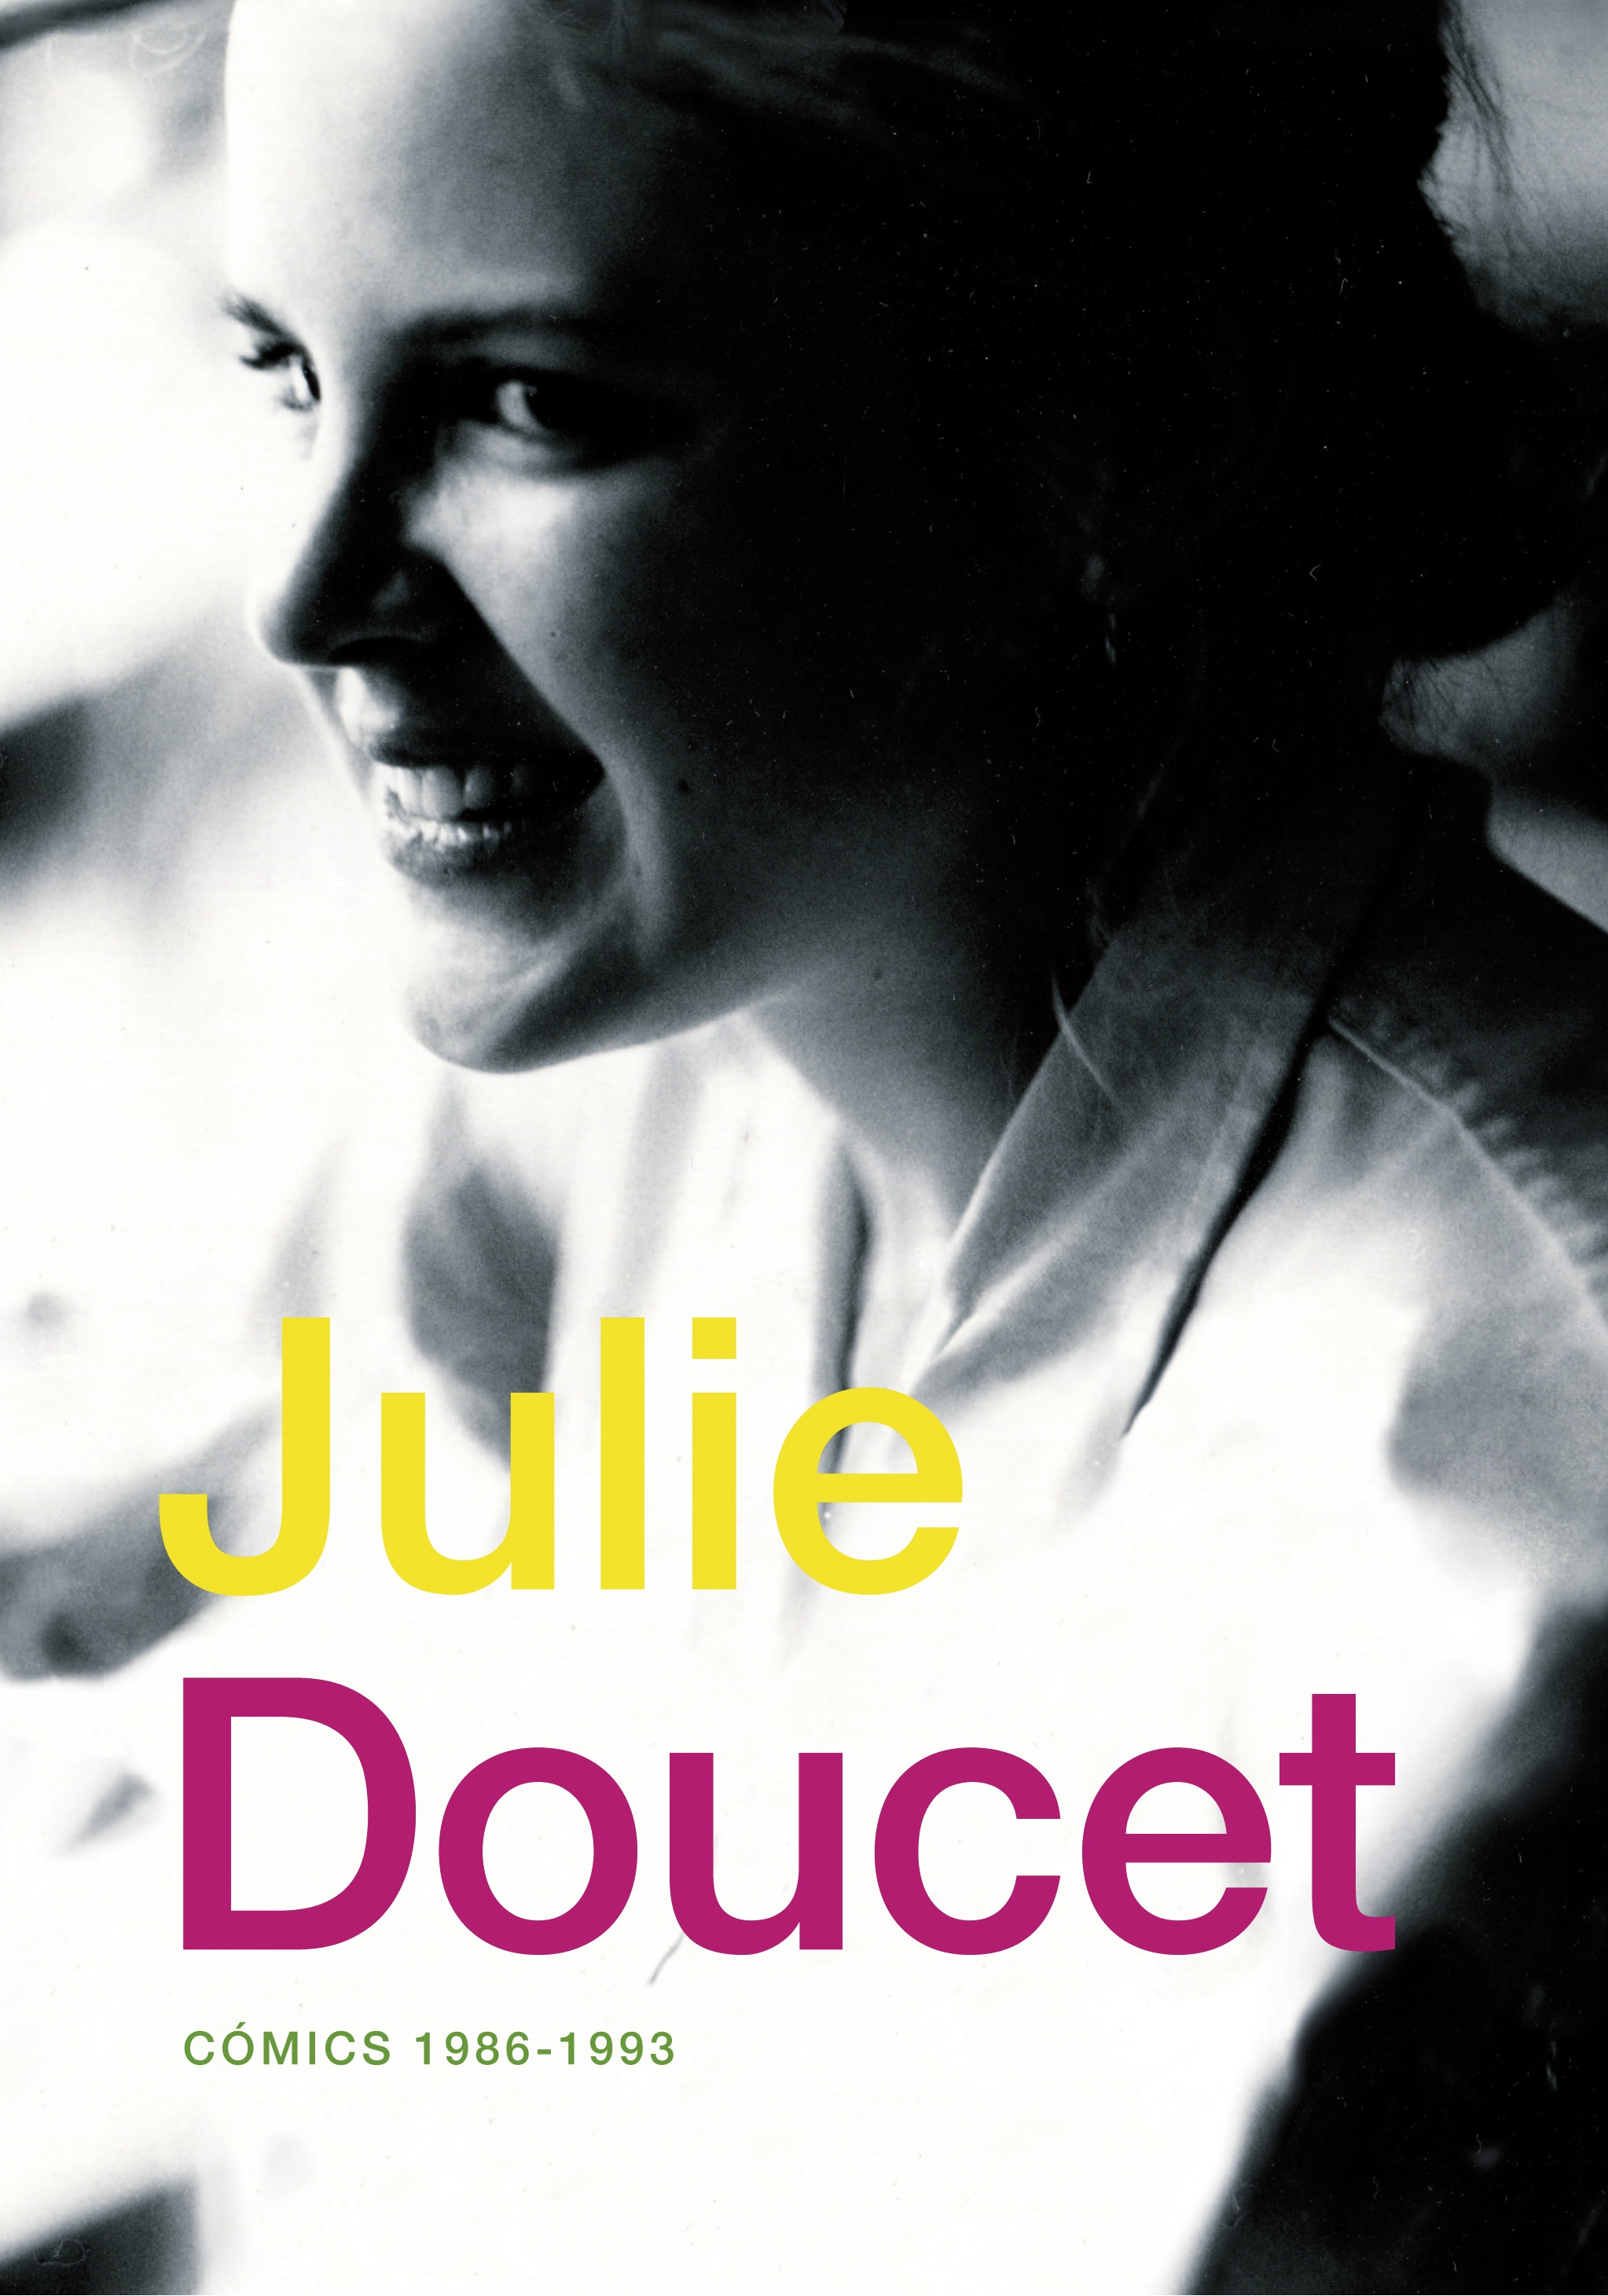 10. Cómics de Julie Doucet